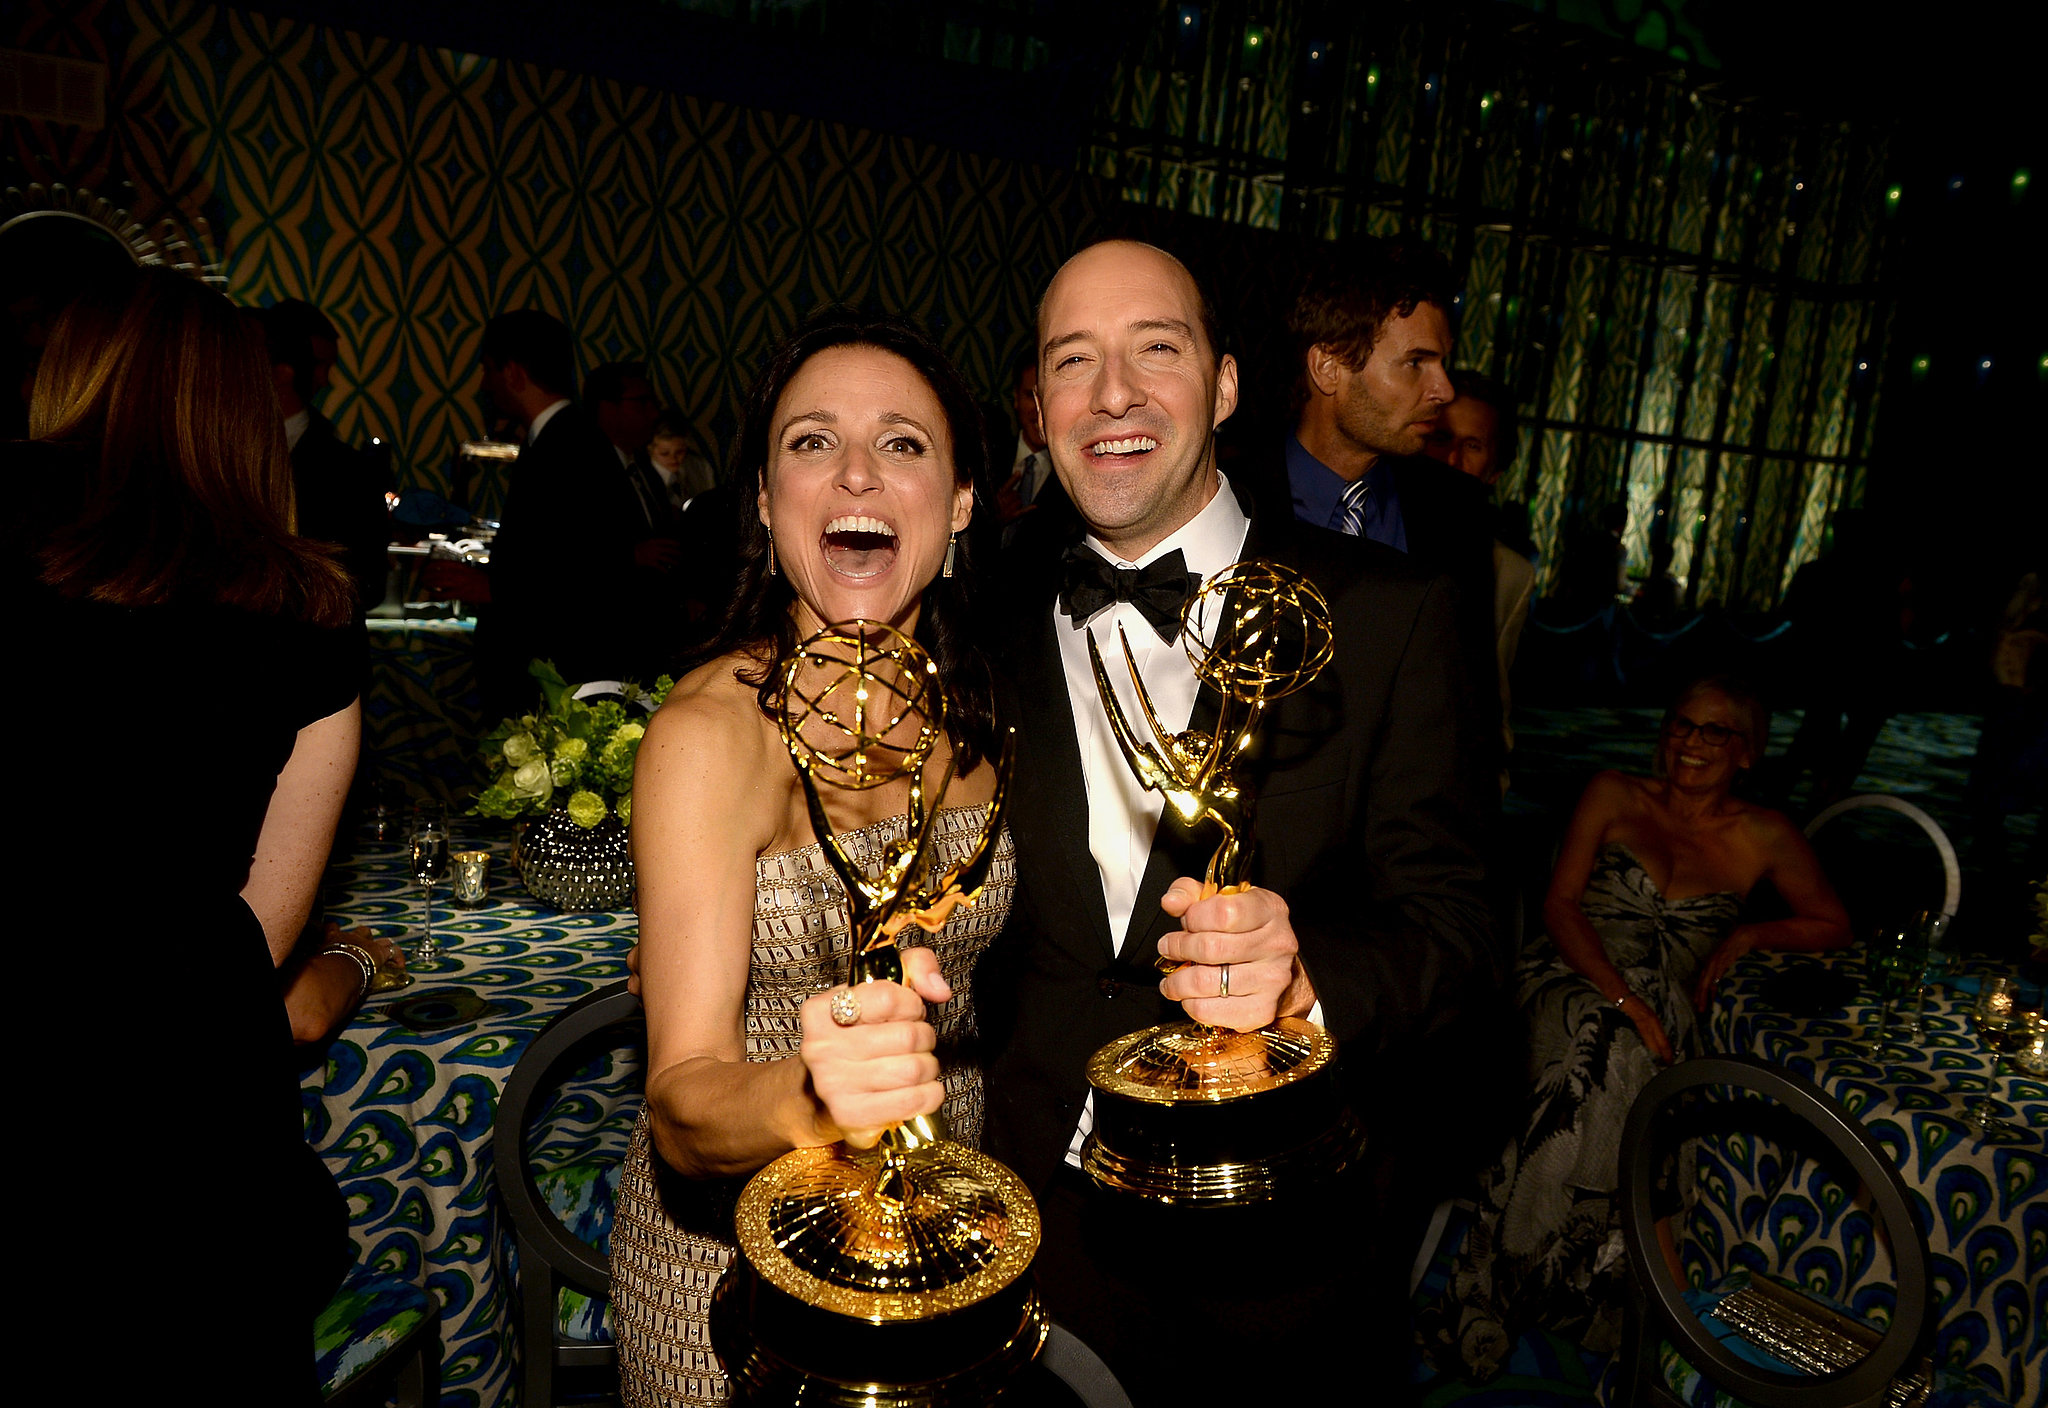 Julia Louis-Dreyfus and Tony Hale got excited about their awards at the 2013 HBO Emmys afterparty.